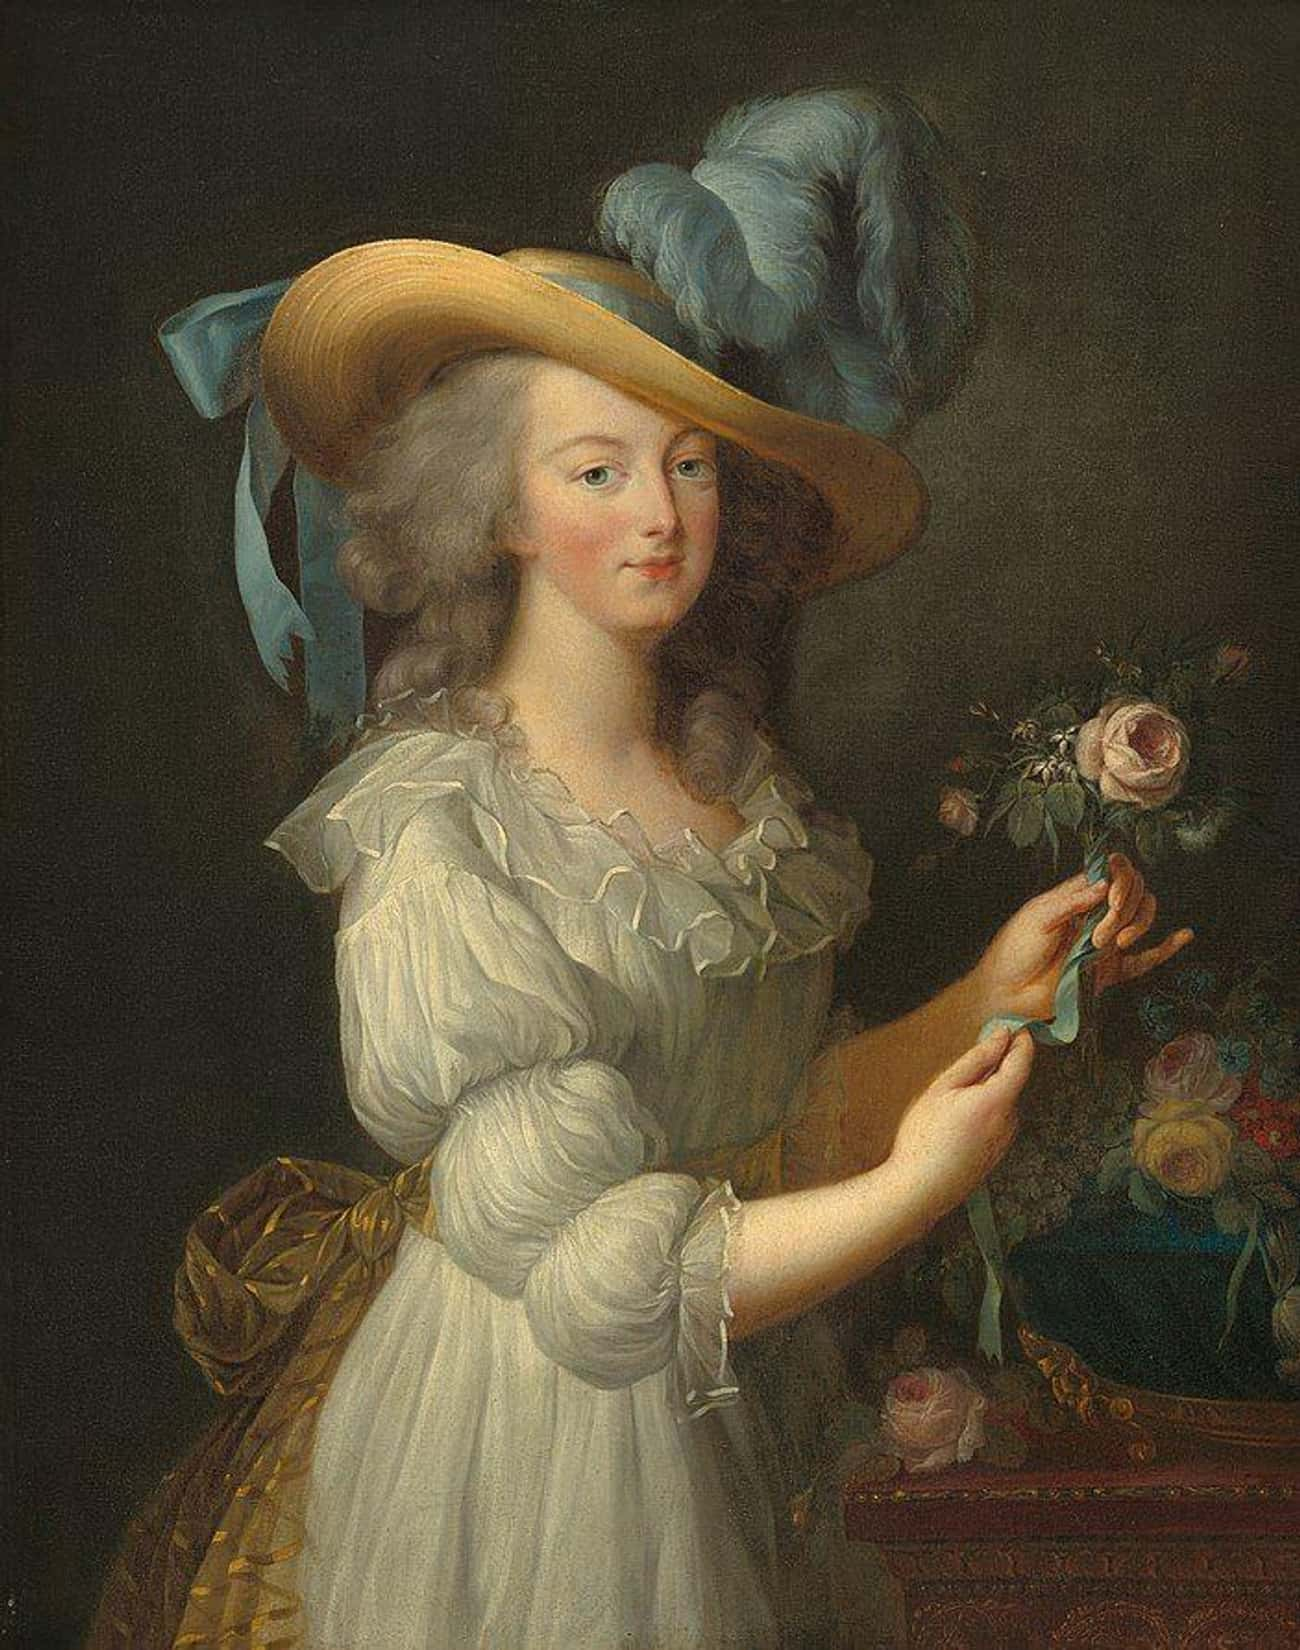 Marie Antoinette Wasn't A  is listed (or ranked) 1 on the list Historical Figures Who Are Nothing Like The People They're Painted To Be